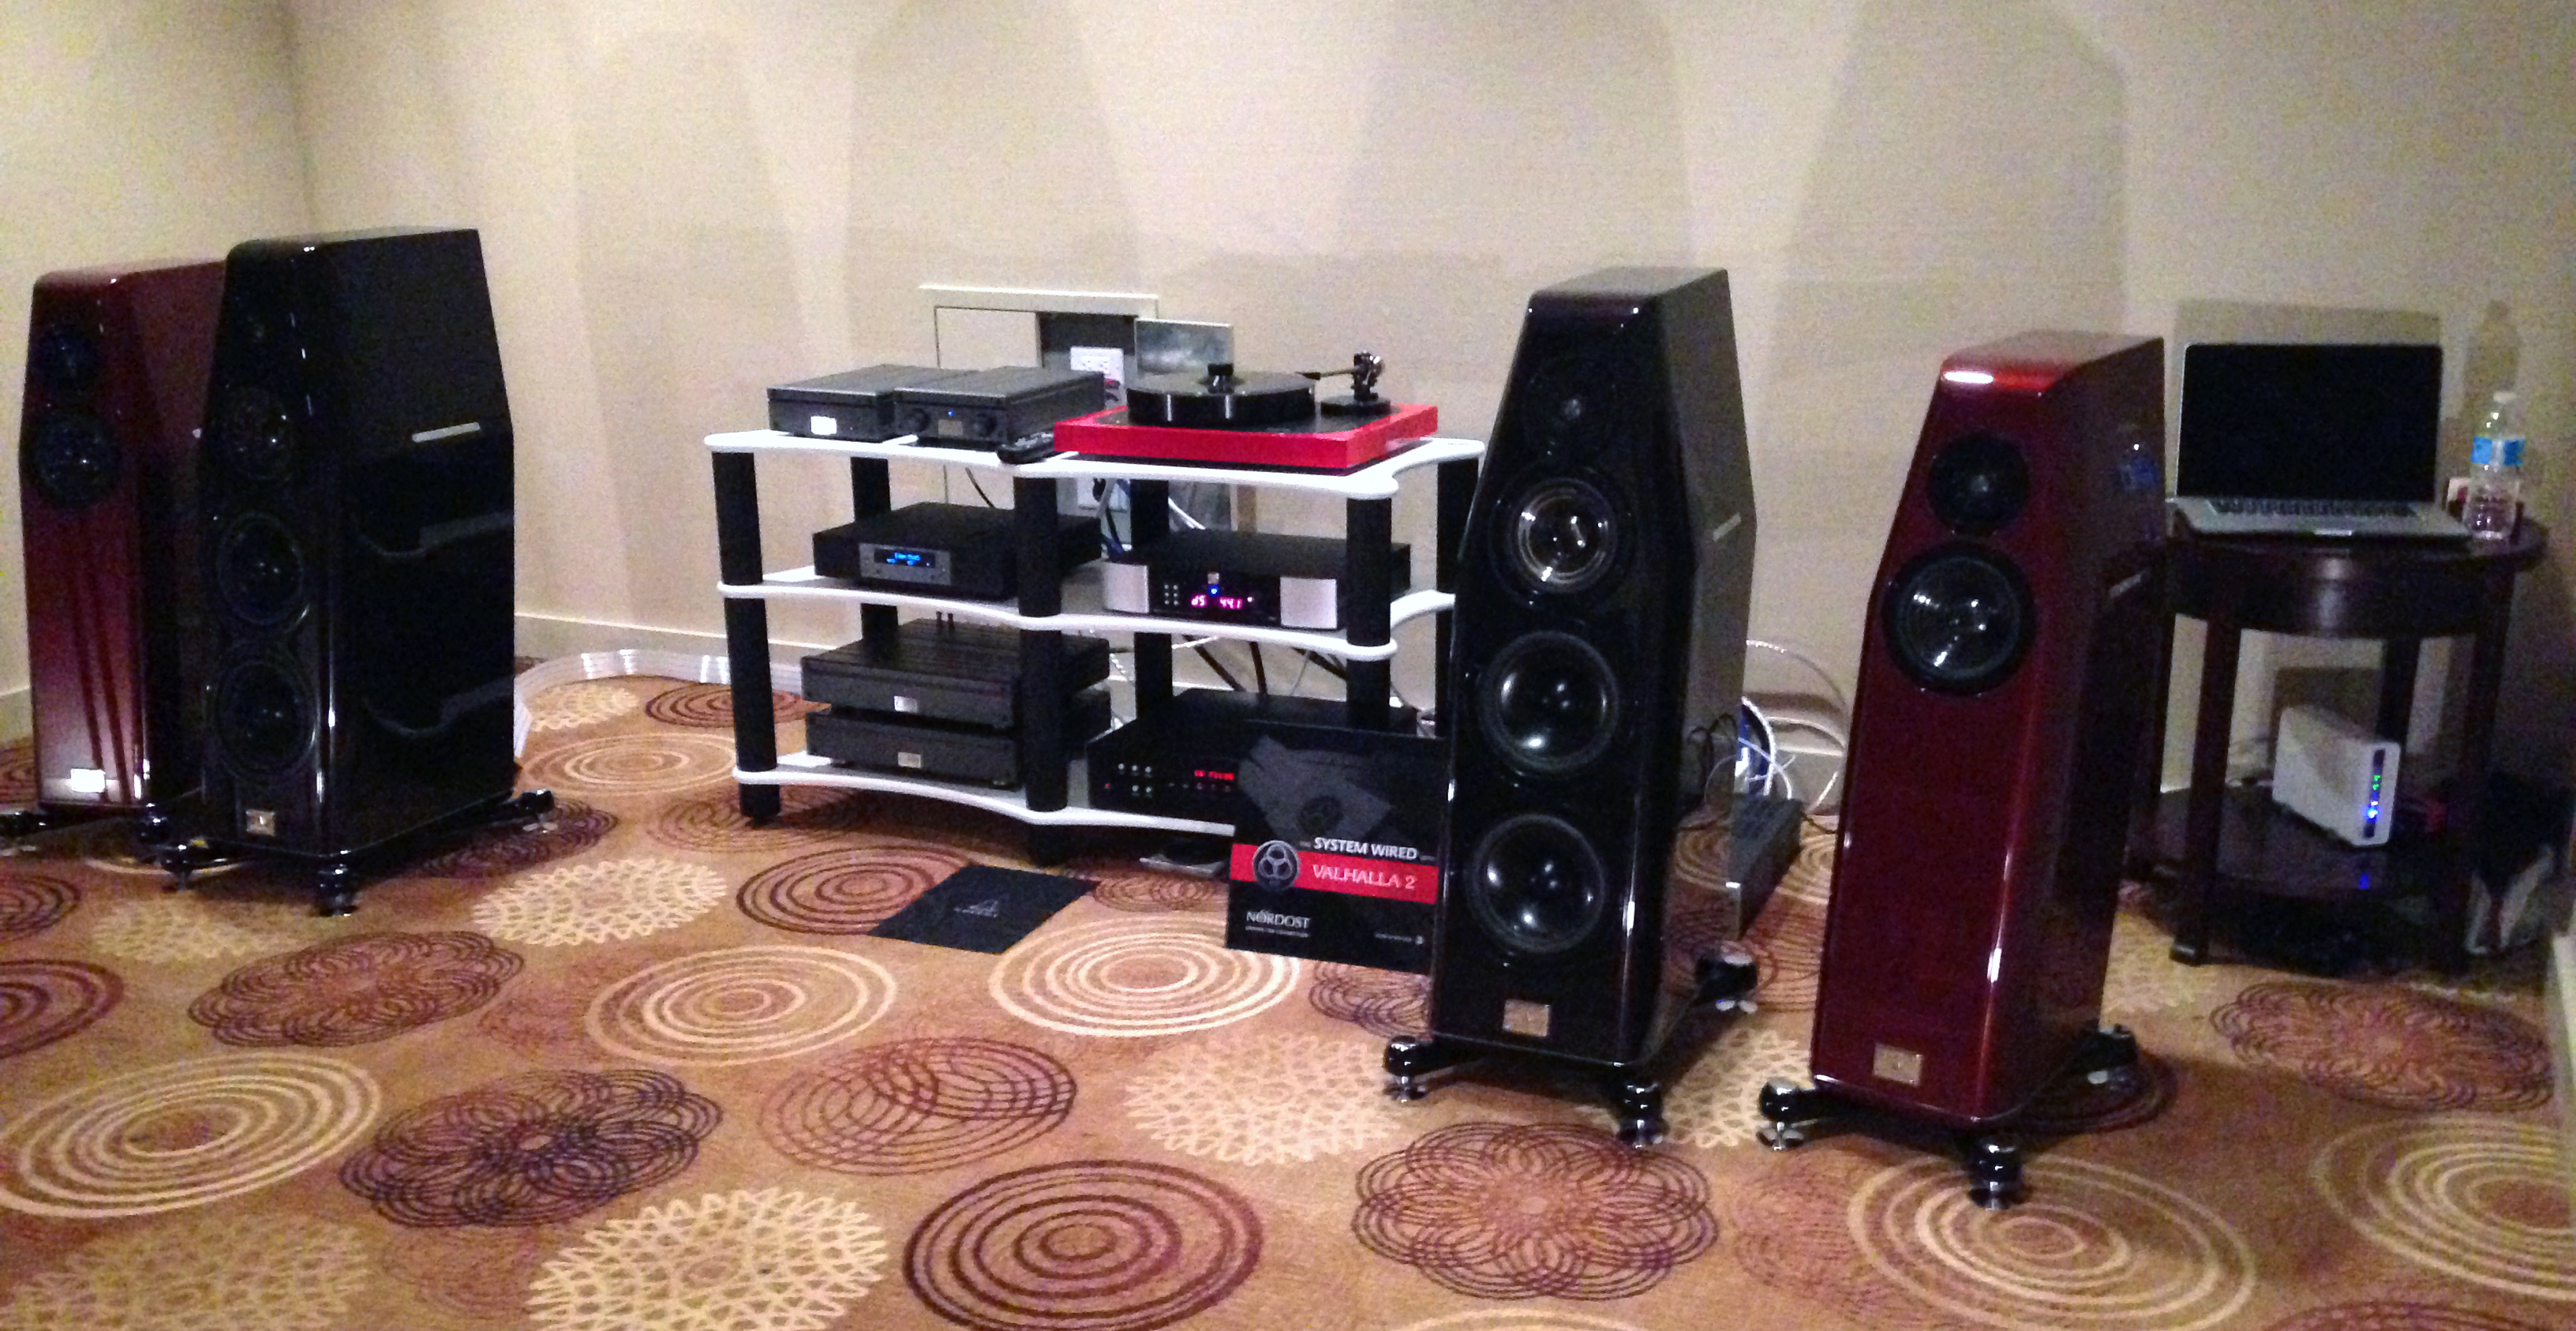 Audio Eden's room sounded amazing with our Valhalla 2 cables!